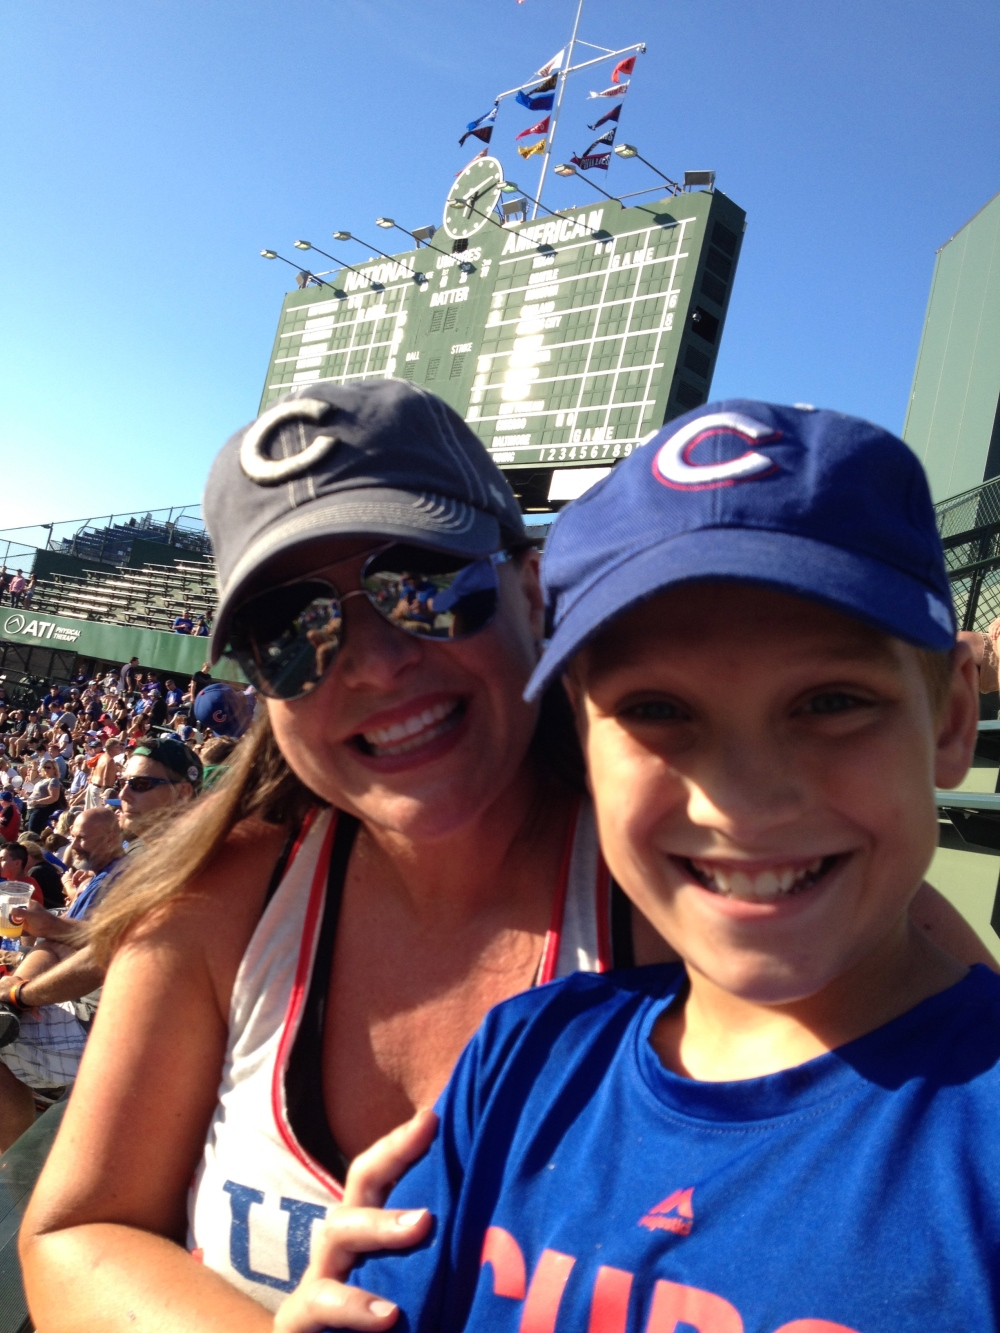 My Wife and Son at Wrigley Field